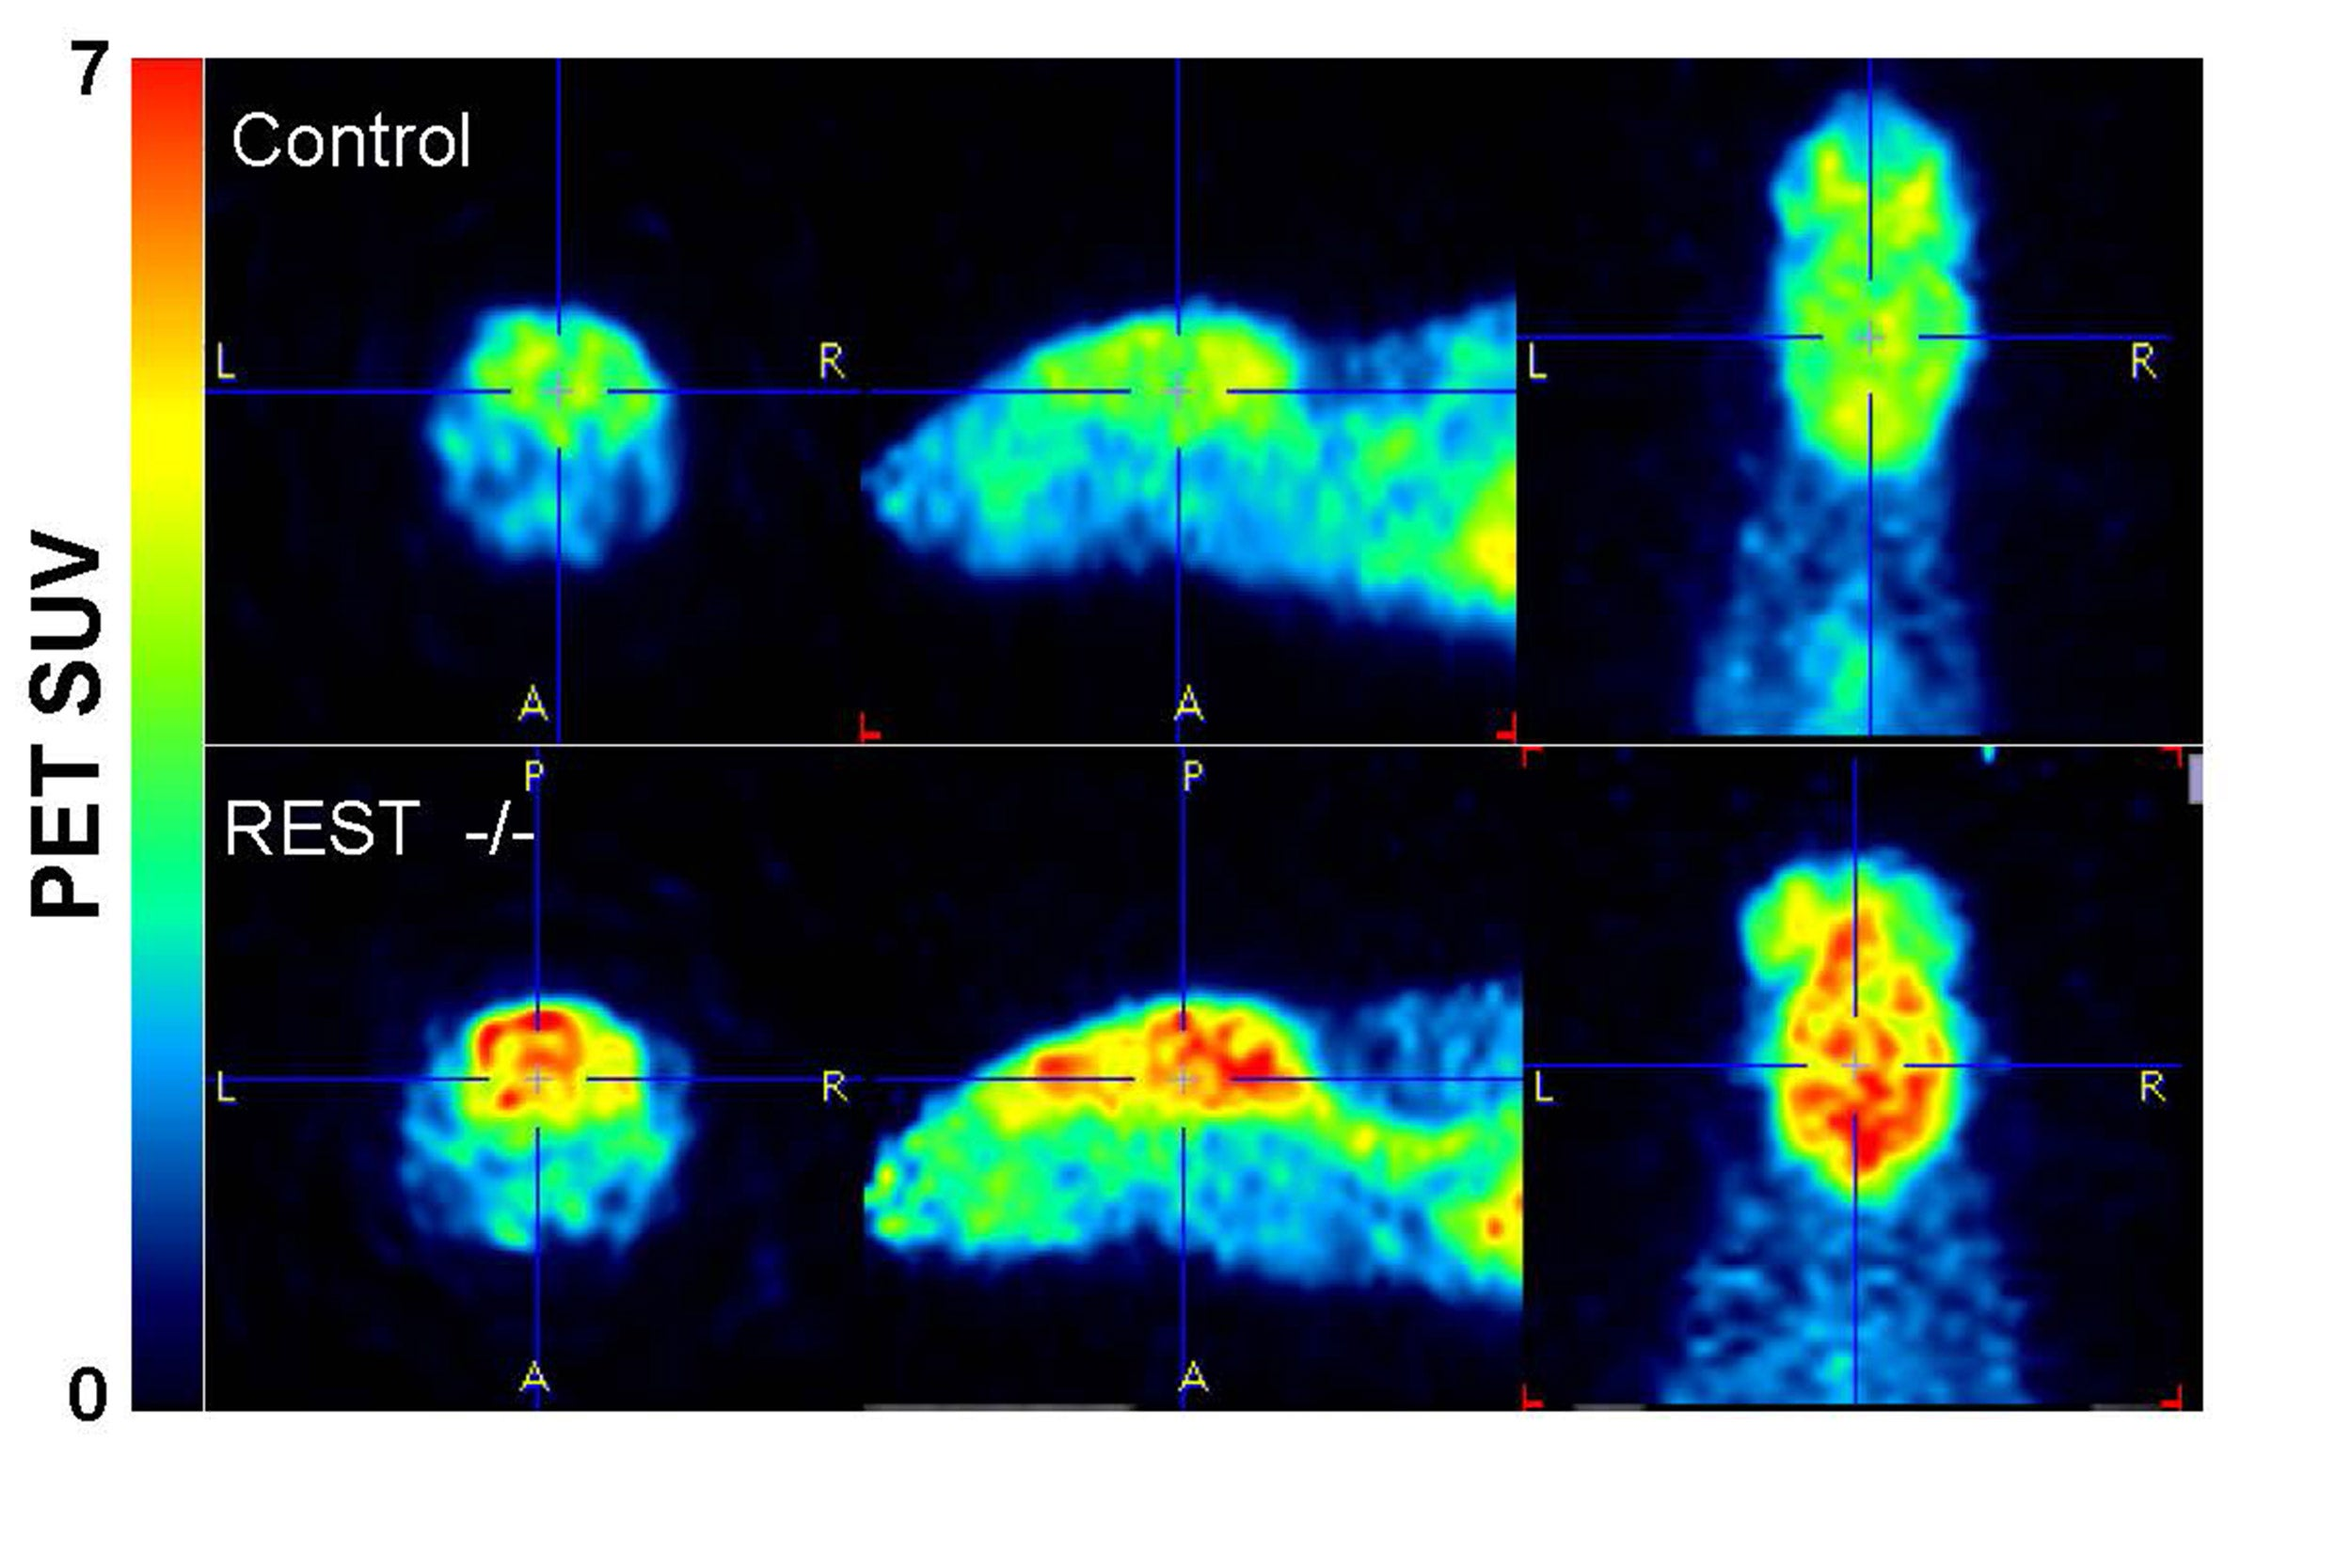 Mice lacking the protein REST (bottom) showed much higher neural activity in the brain than normal mice.